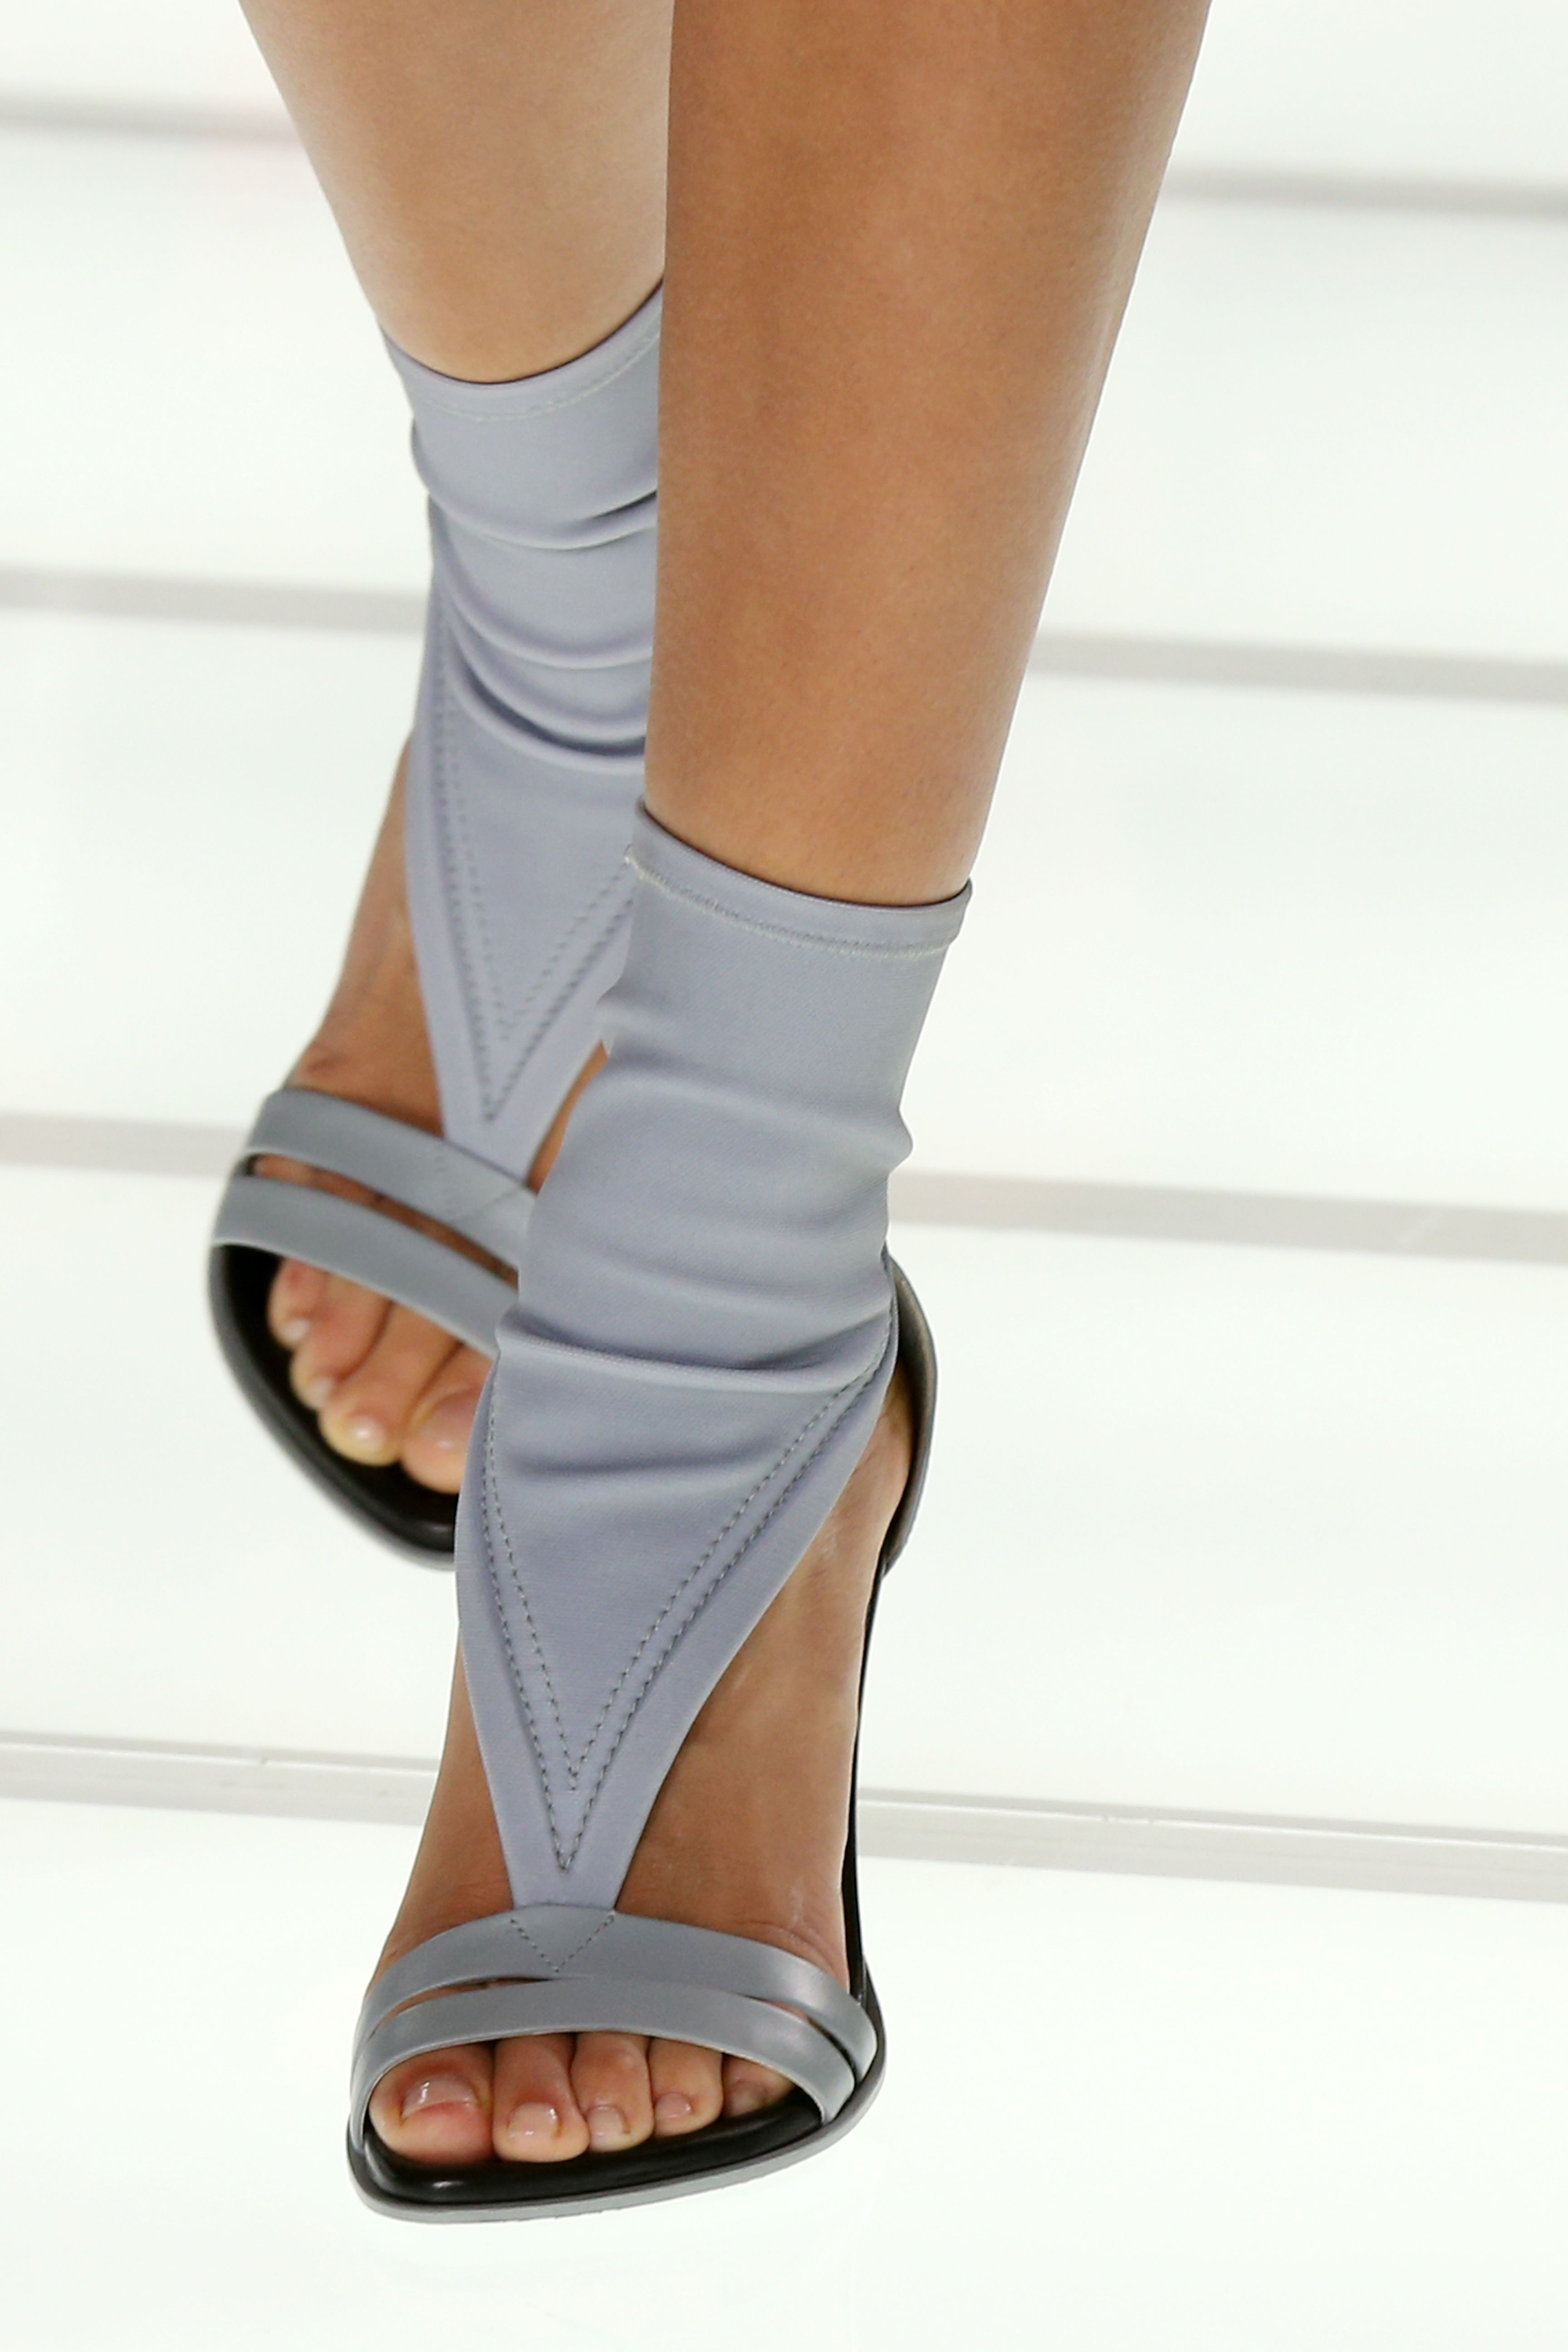 0be4655e7ad6 Shoes from the Louis Vuitton Spring-Summer 2018 Show by Nicolas Ghesquiere.  Watch the show now at louisvuitton.com.